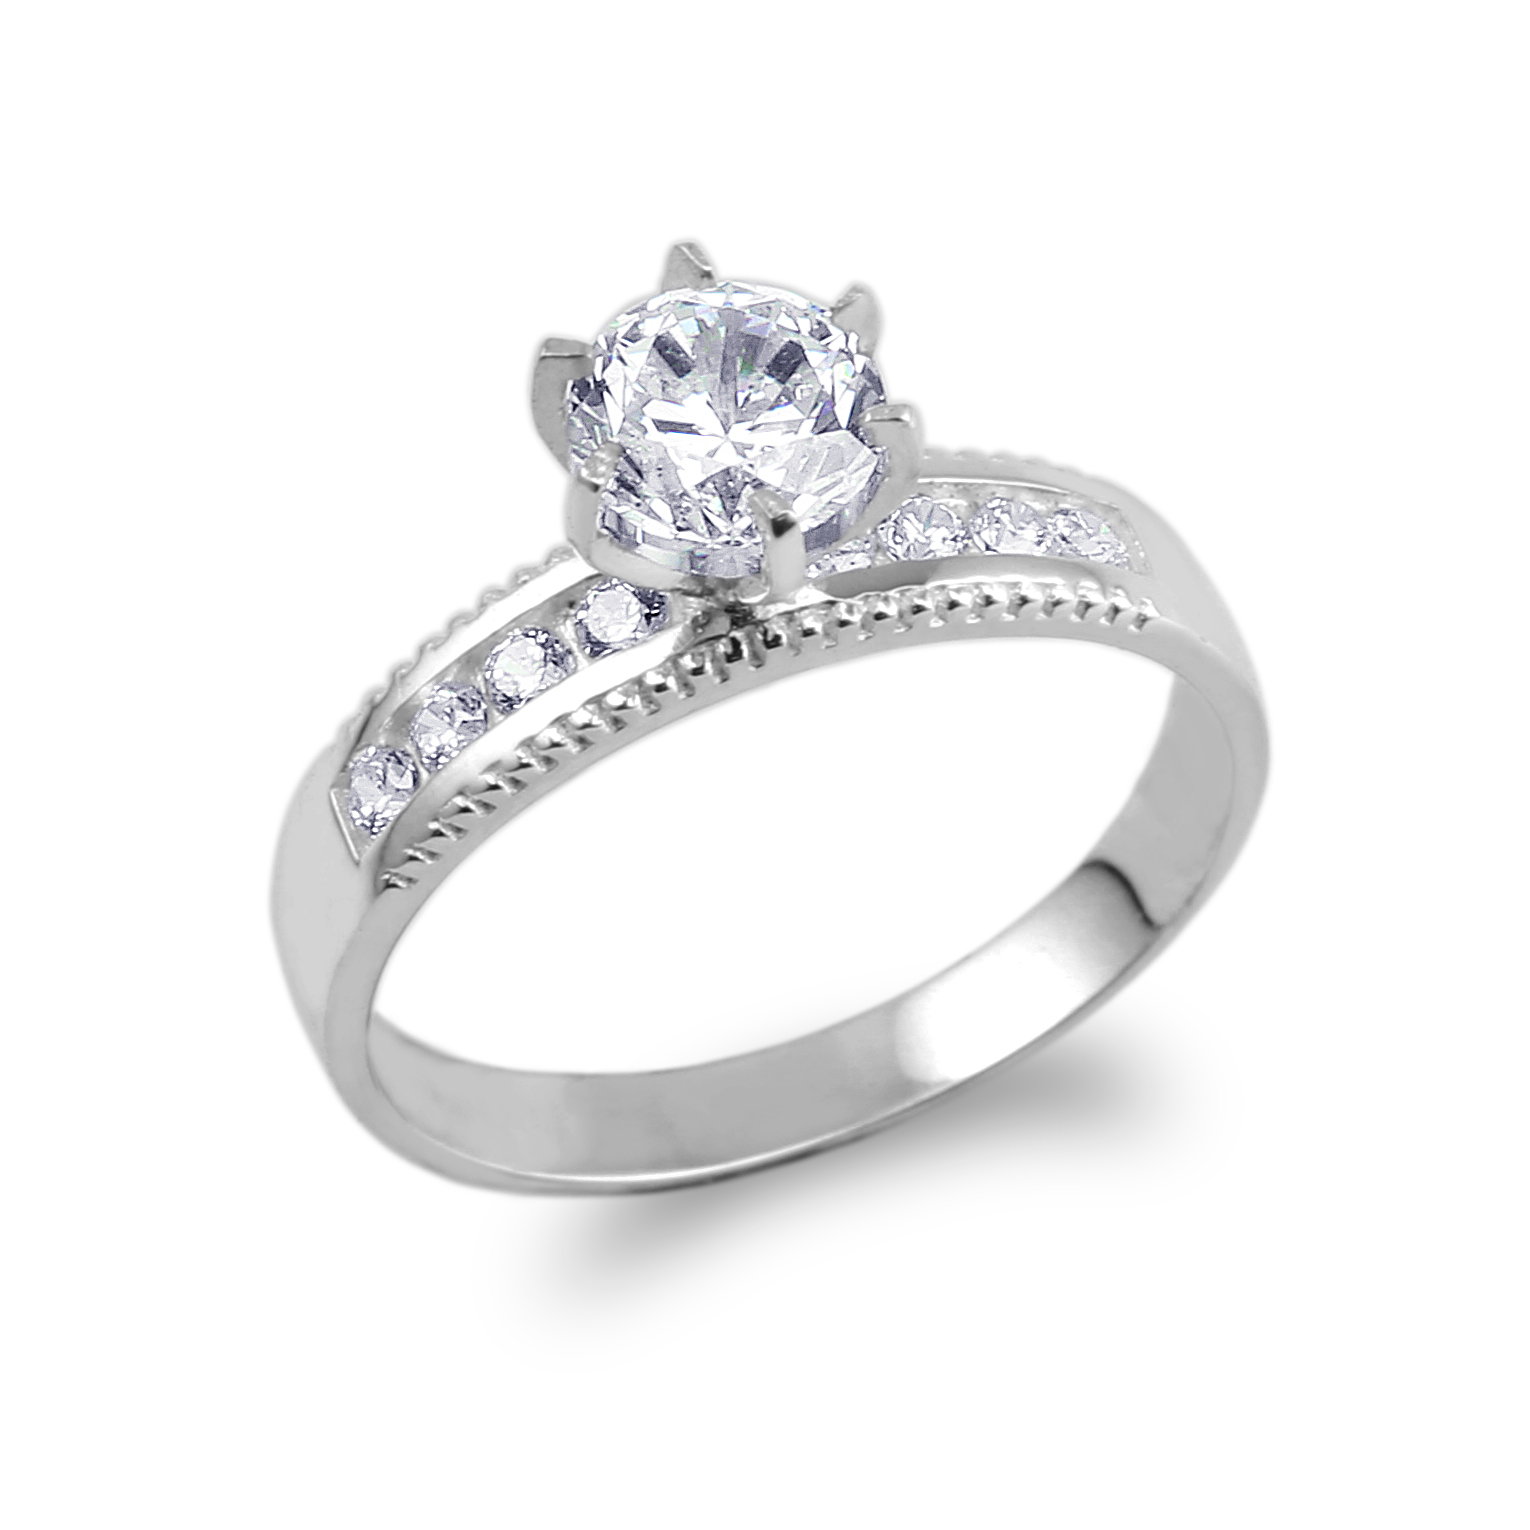 JamesJenny 10K White Gold 0.8ct CZ Beautiful Wedding Solitaire Ring Size 4-10